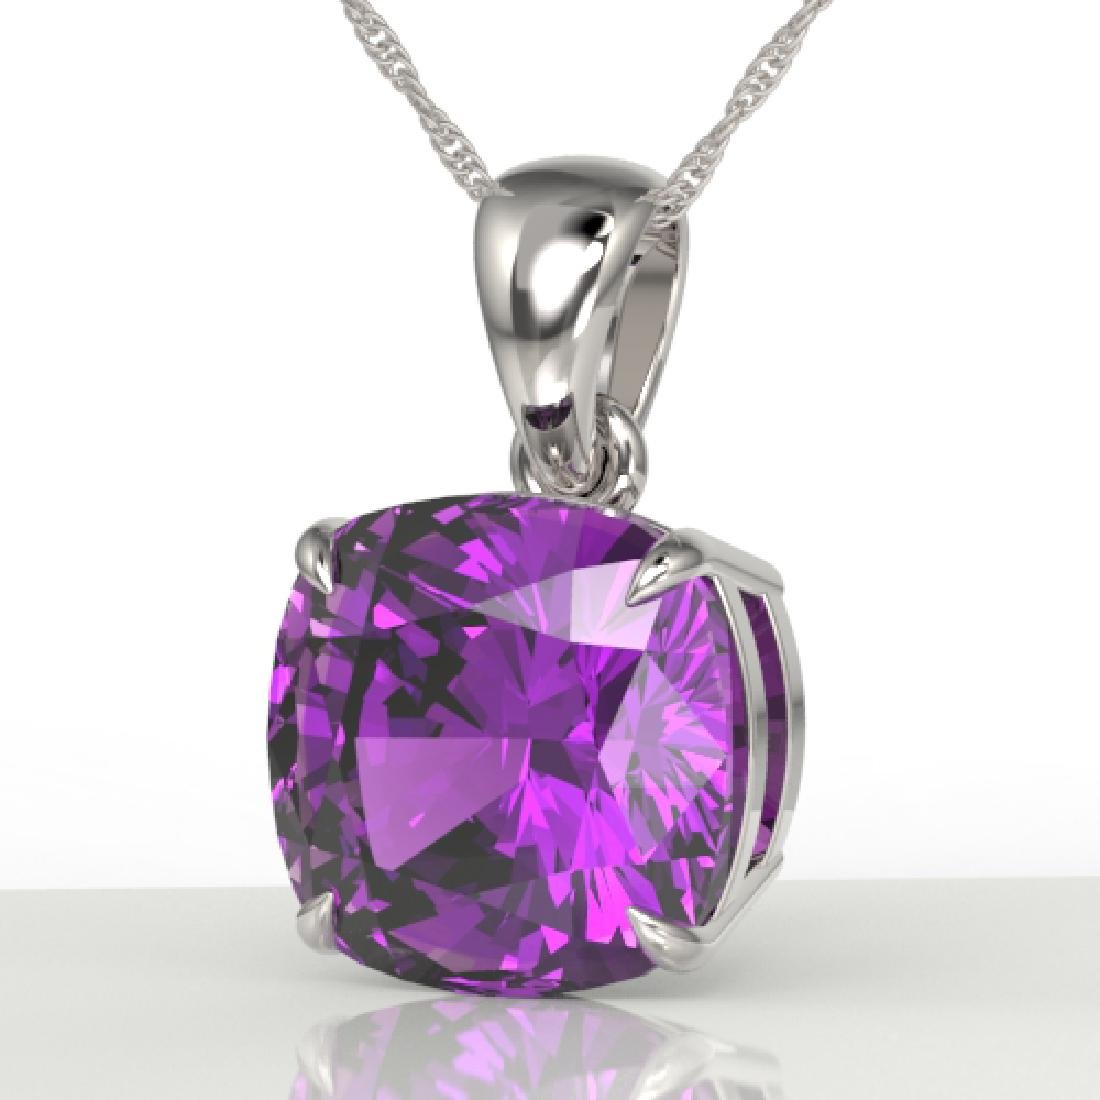 6 CTW Cushion Cut Amethyst Designer Solitaire Necklace